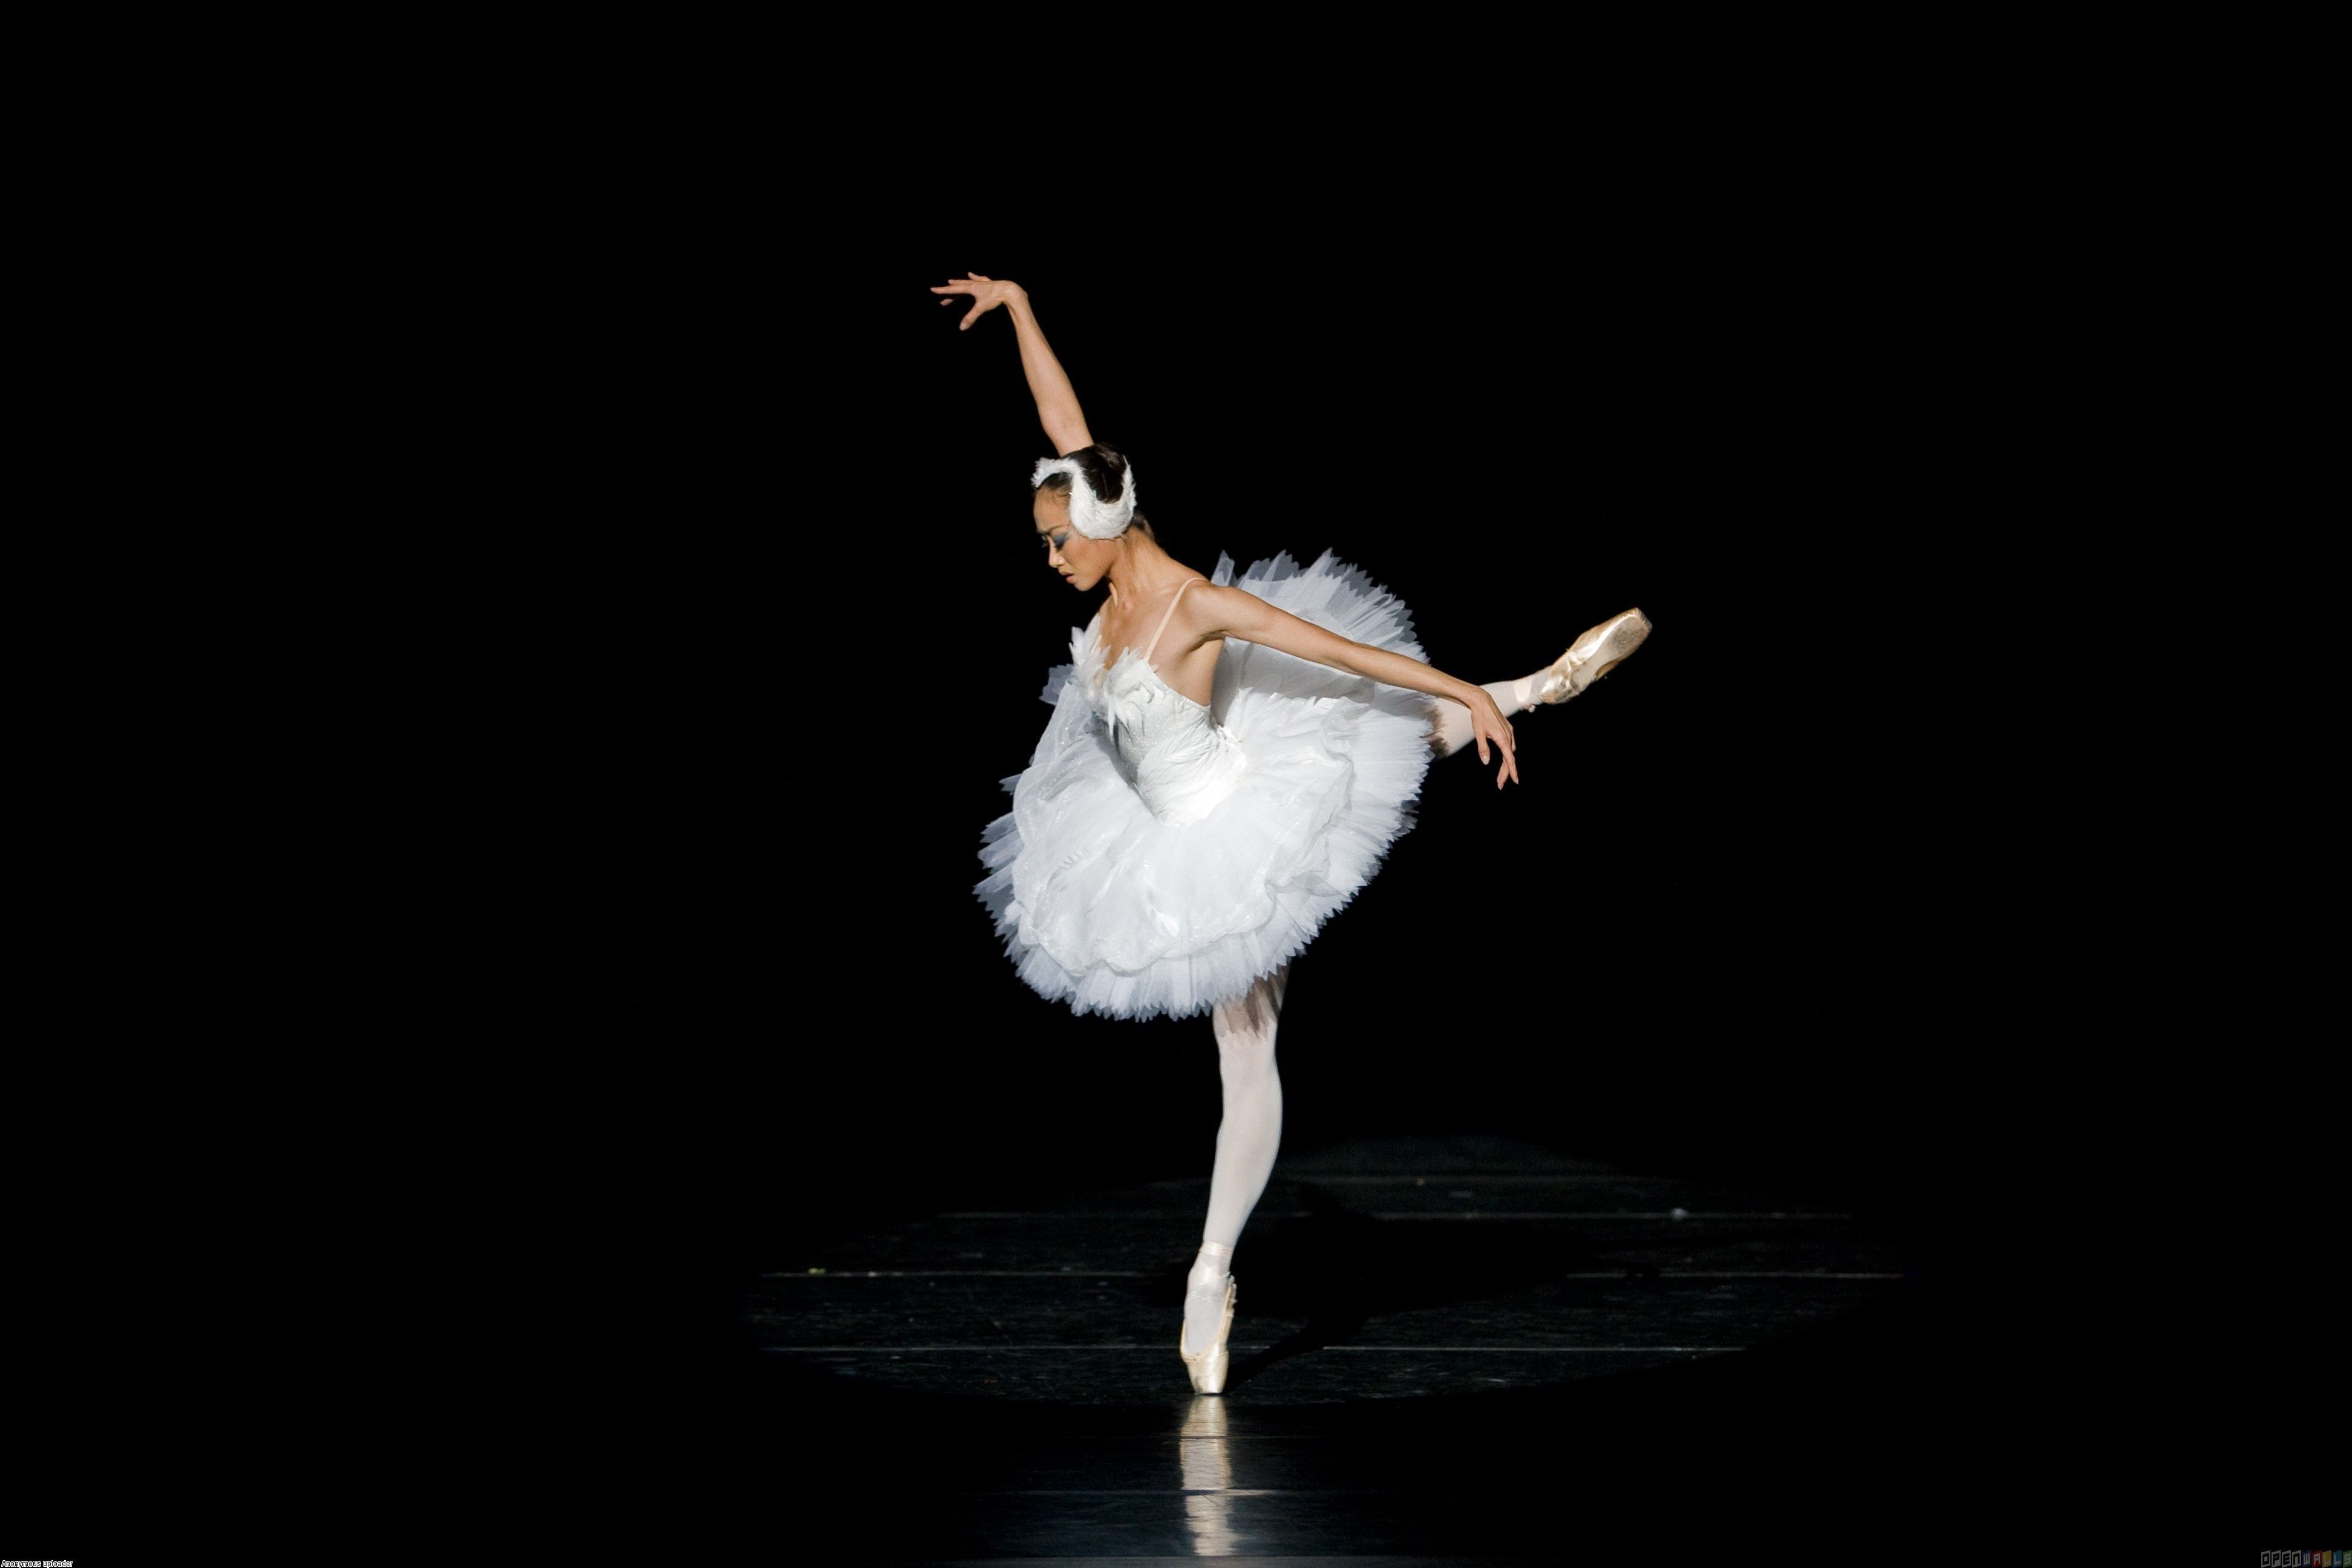 Ballerina Photo Wallpapers Pictures With Ballerina Stranica 6 Ballet Wallpaper Ballerina Wallpaper Ballerina Images